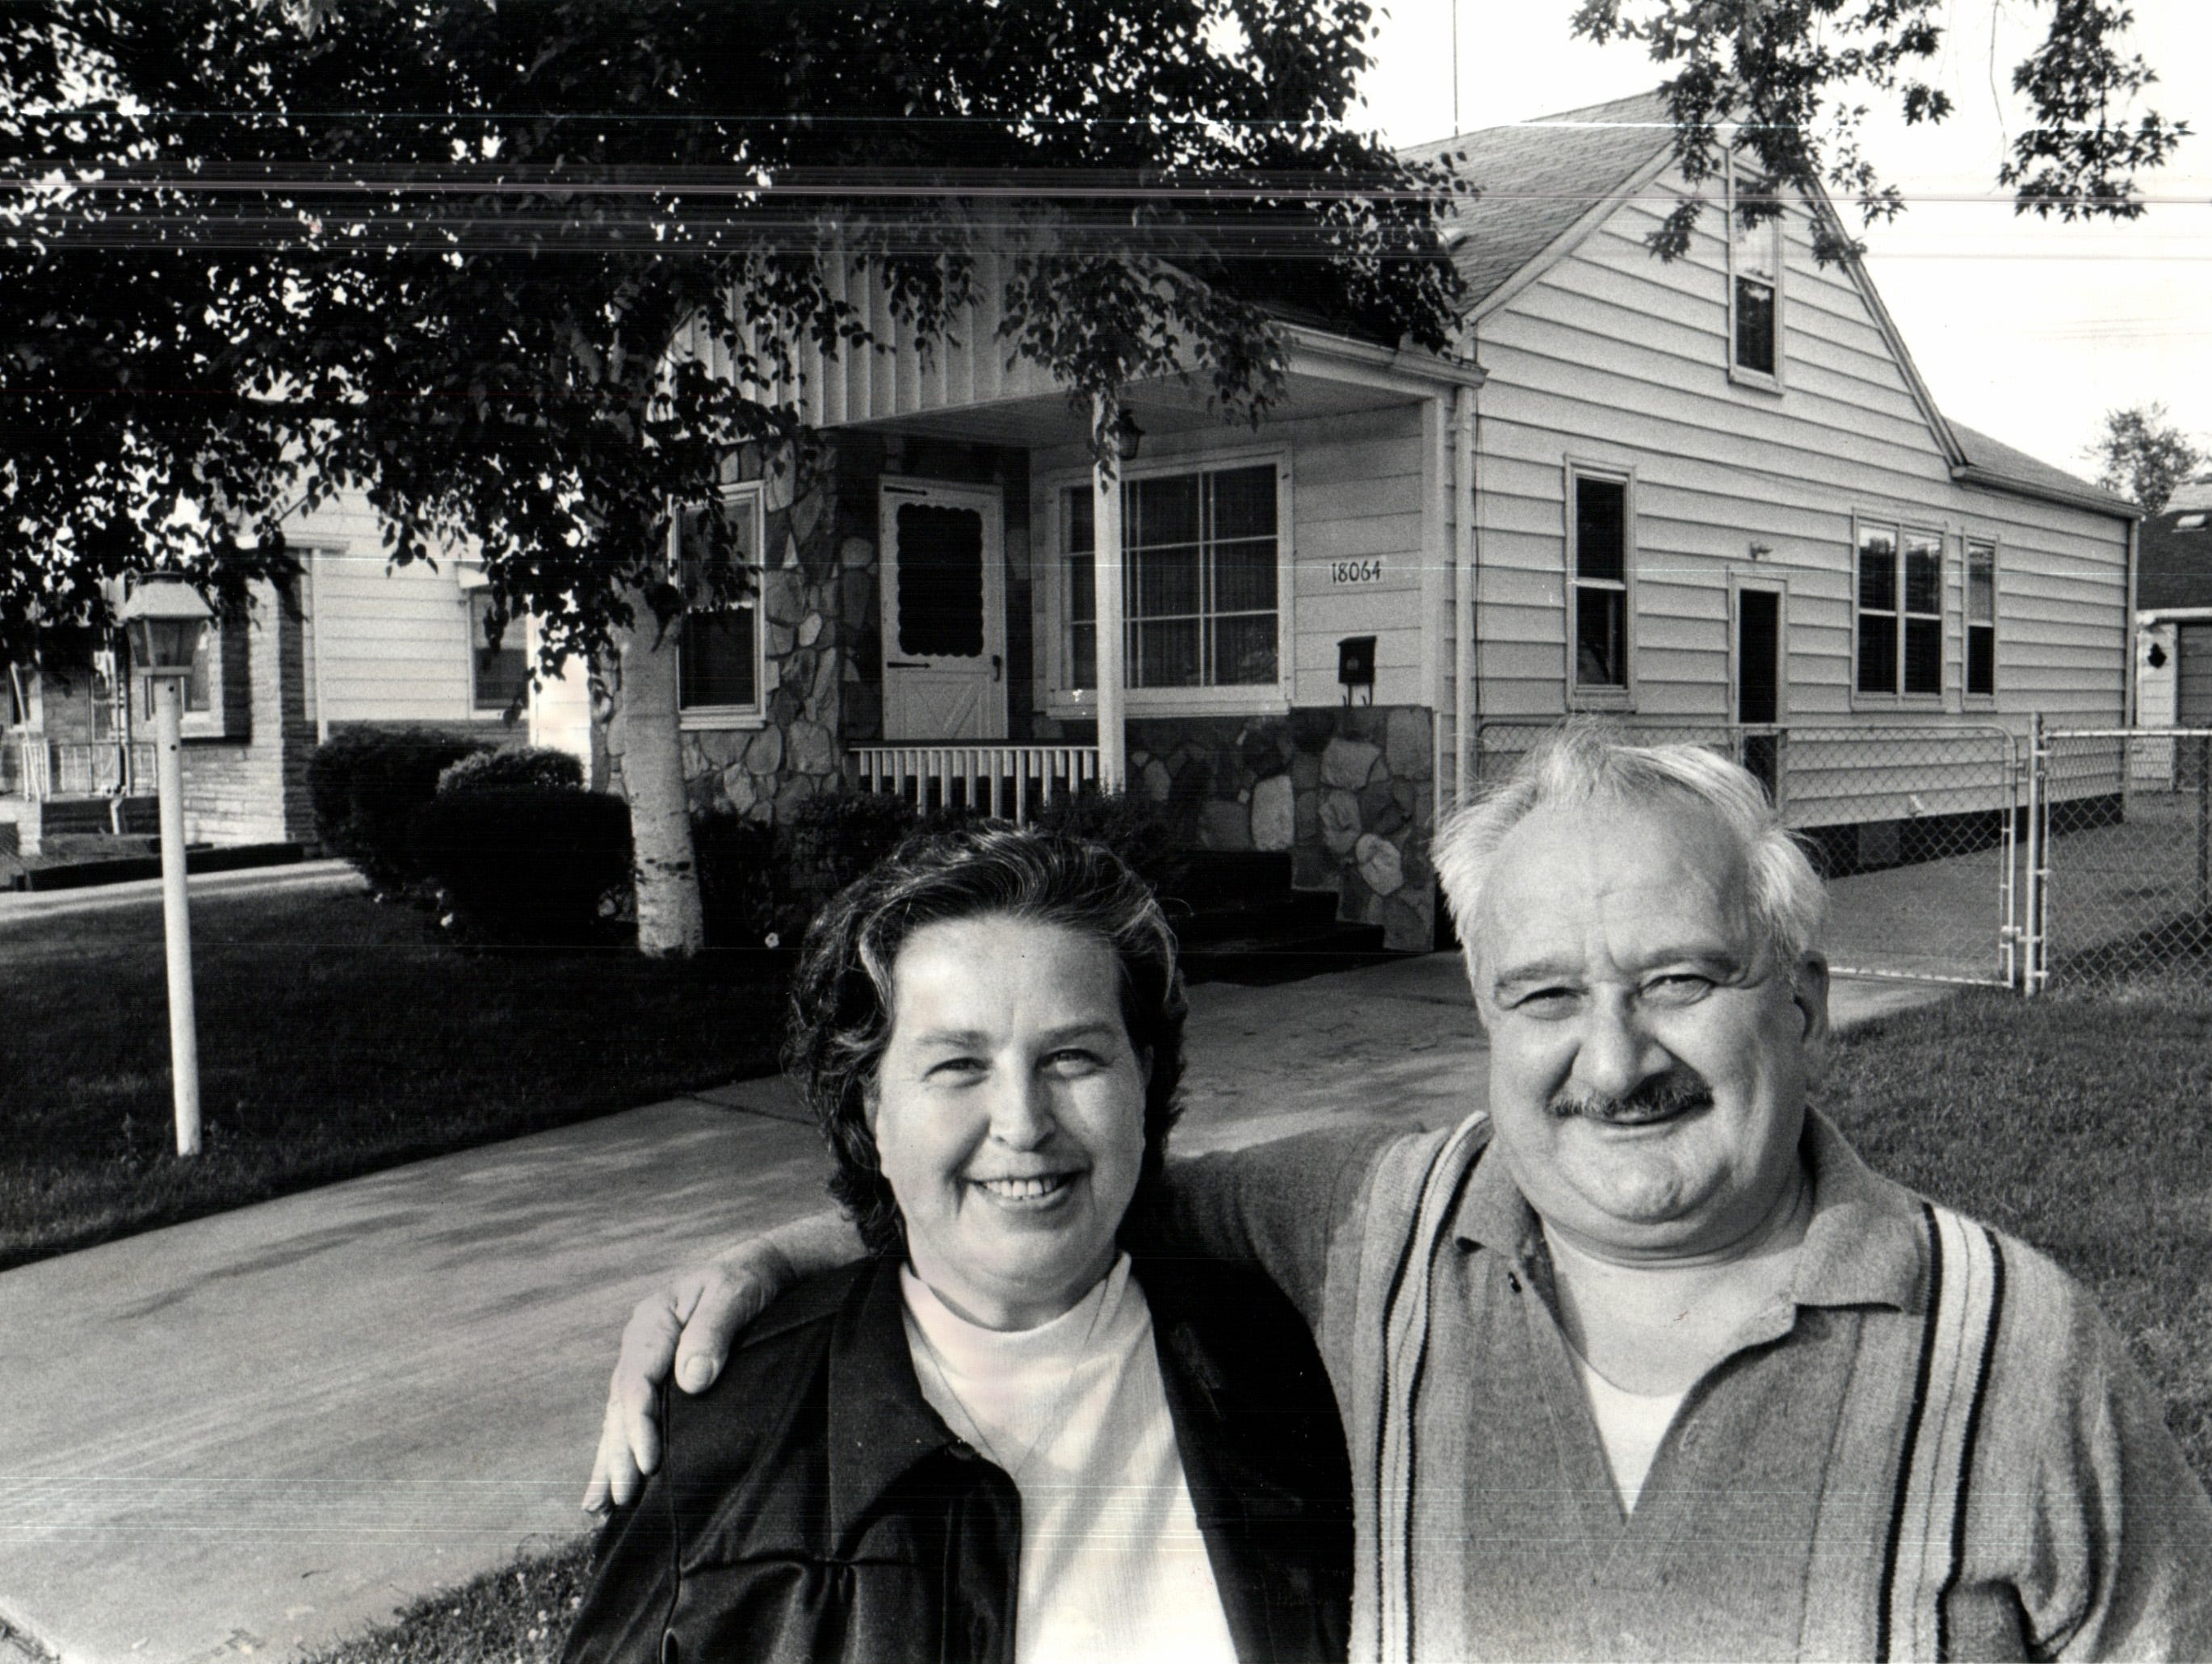 Donald and Mary Ludwig lived in the Poletown neighborhood in Detroit, Michigan when General Motors announced a new factory where their home was. Their 67-year-old house on Kanter, which they'd lived in since 1952, was in the middle of the proposed plant site. The offer they received from GM, however, prompted the former Poletown Neighborhood Council activist to move to a bungalow on Barlow in northwest Detroit.